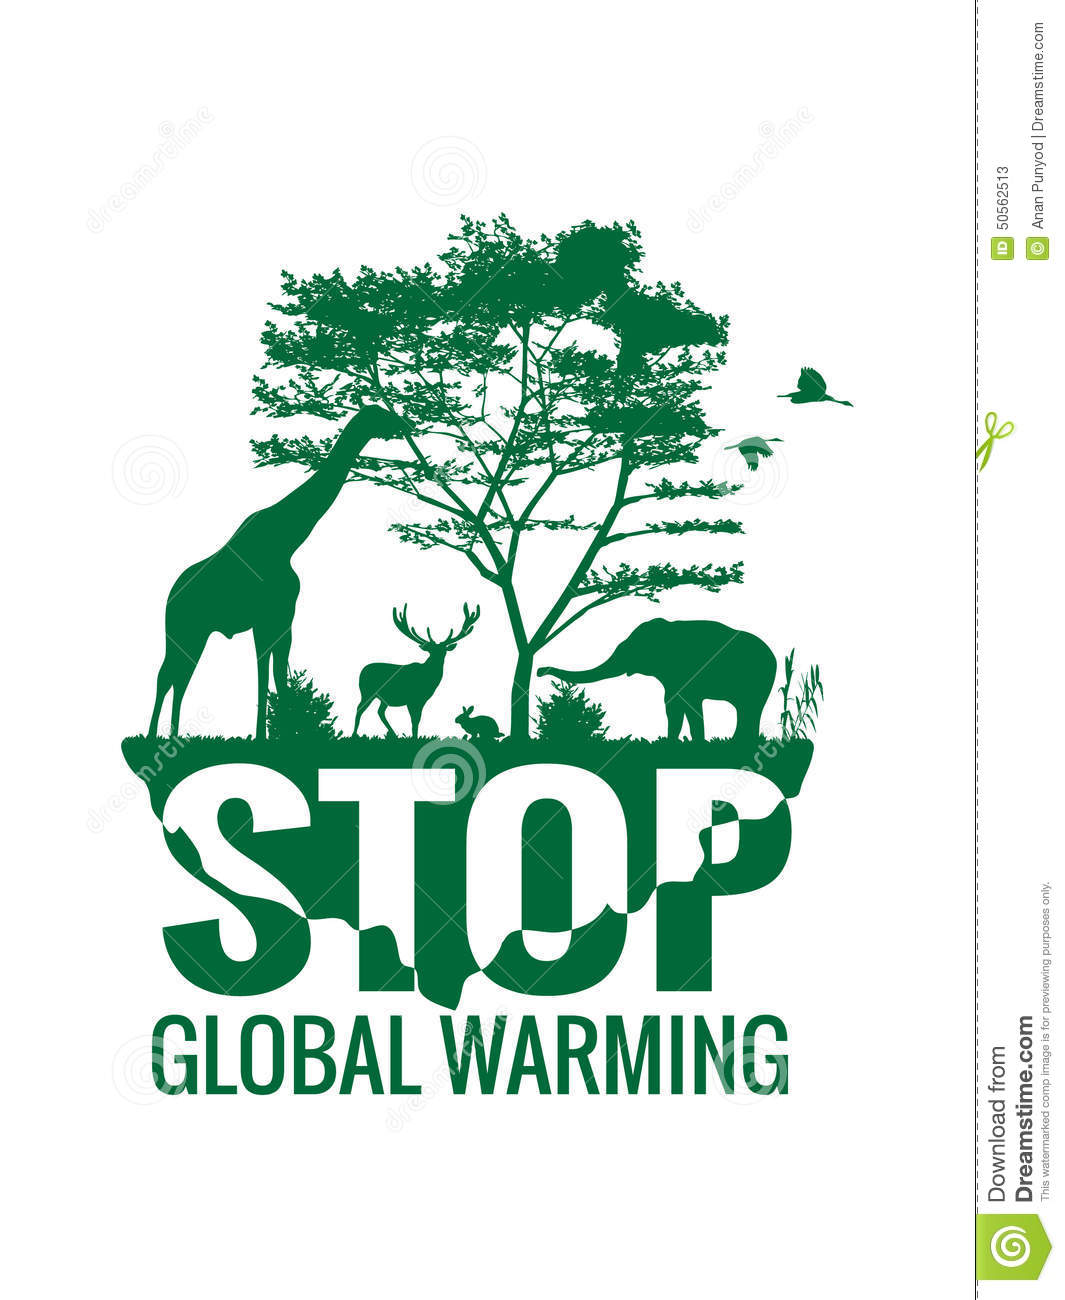 stop global warming (animal planet) stock vector - illustration of